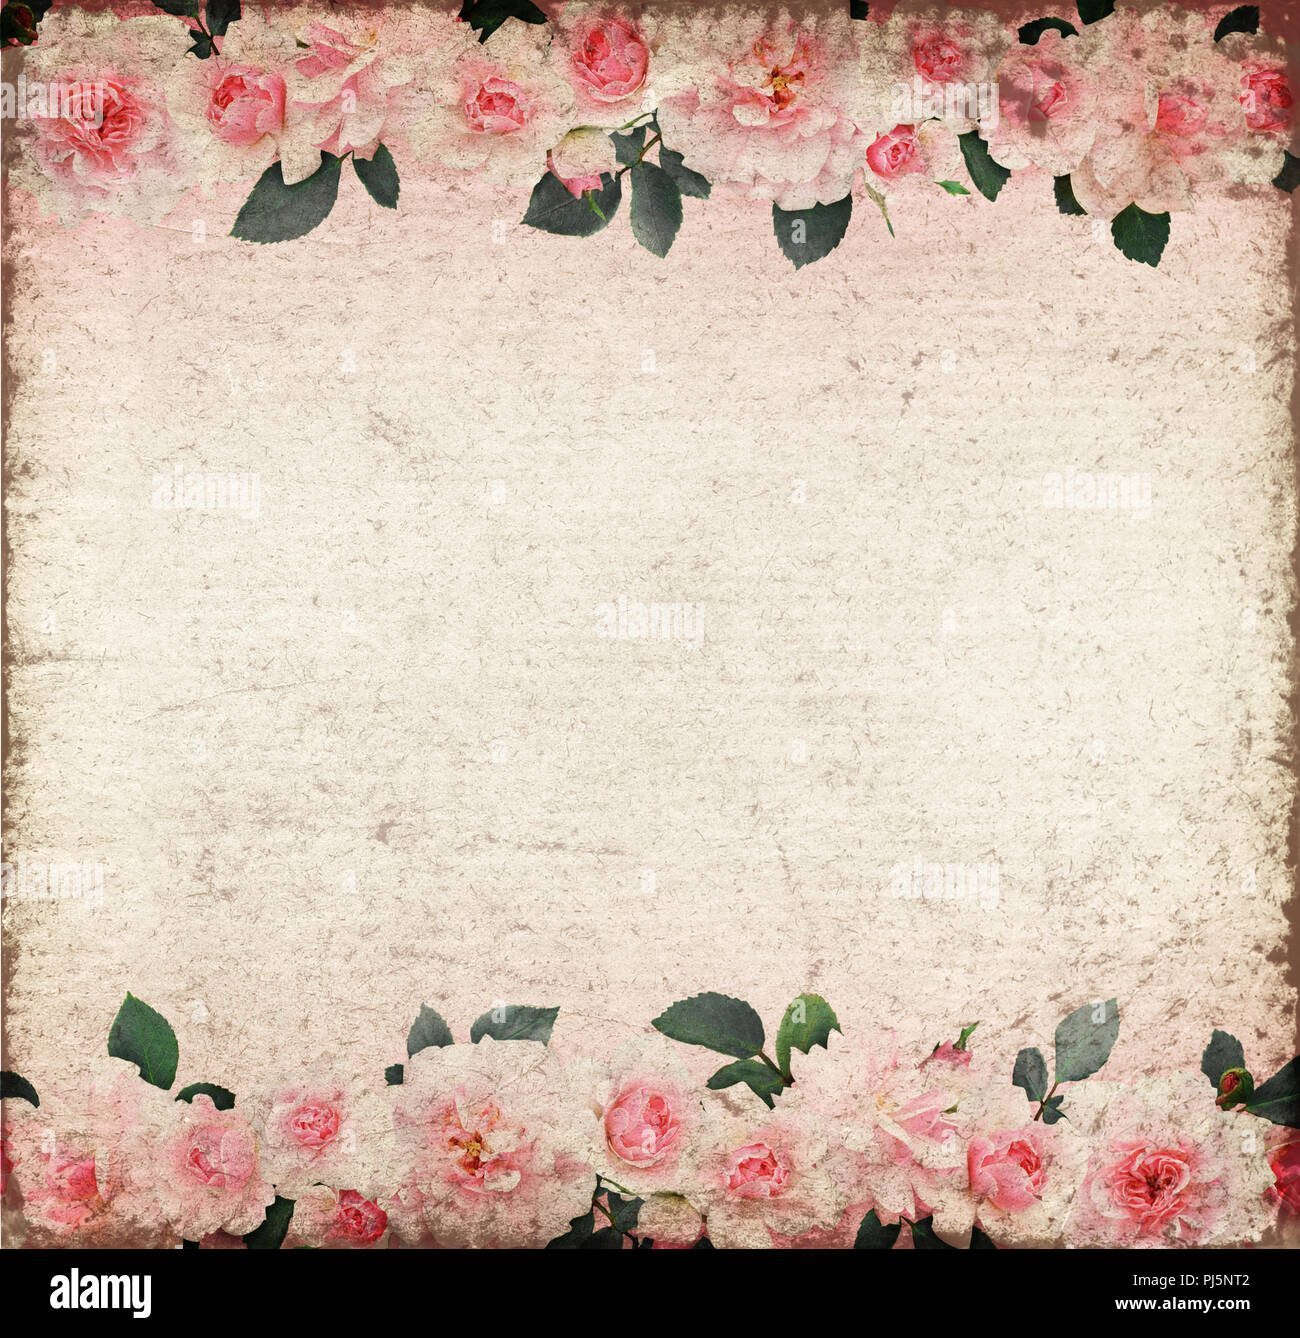 Pink Rose Flowers And Leaves In A Line Compositions On Old Paper